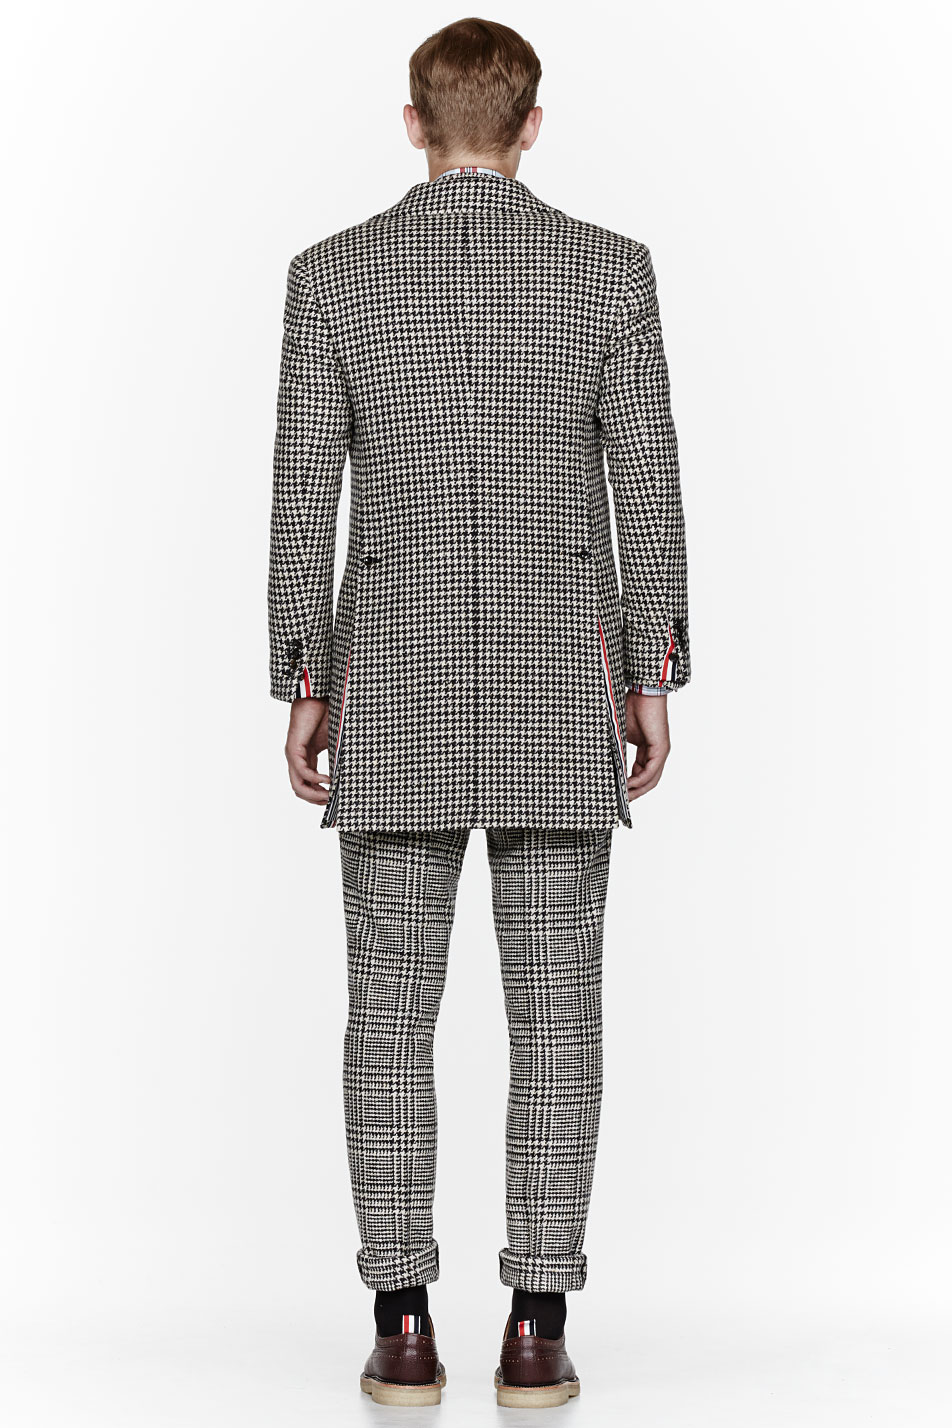 Glen Plaid Suit x Herringbone Coat Thom Browne 3